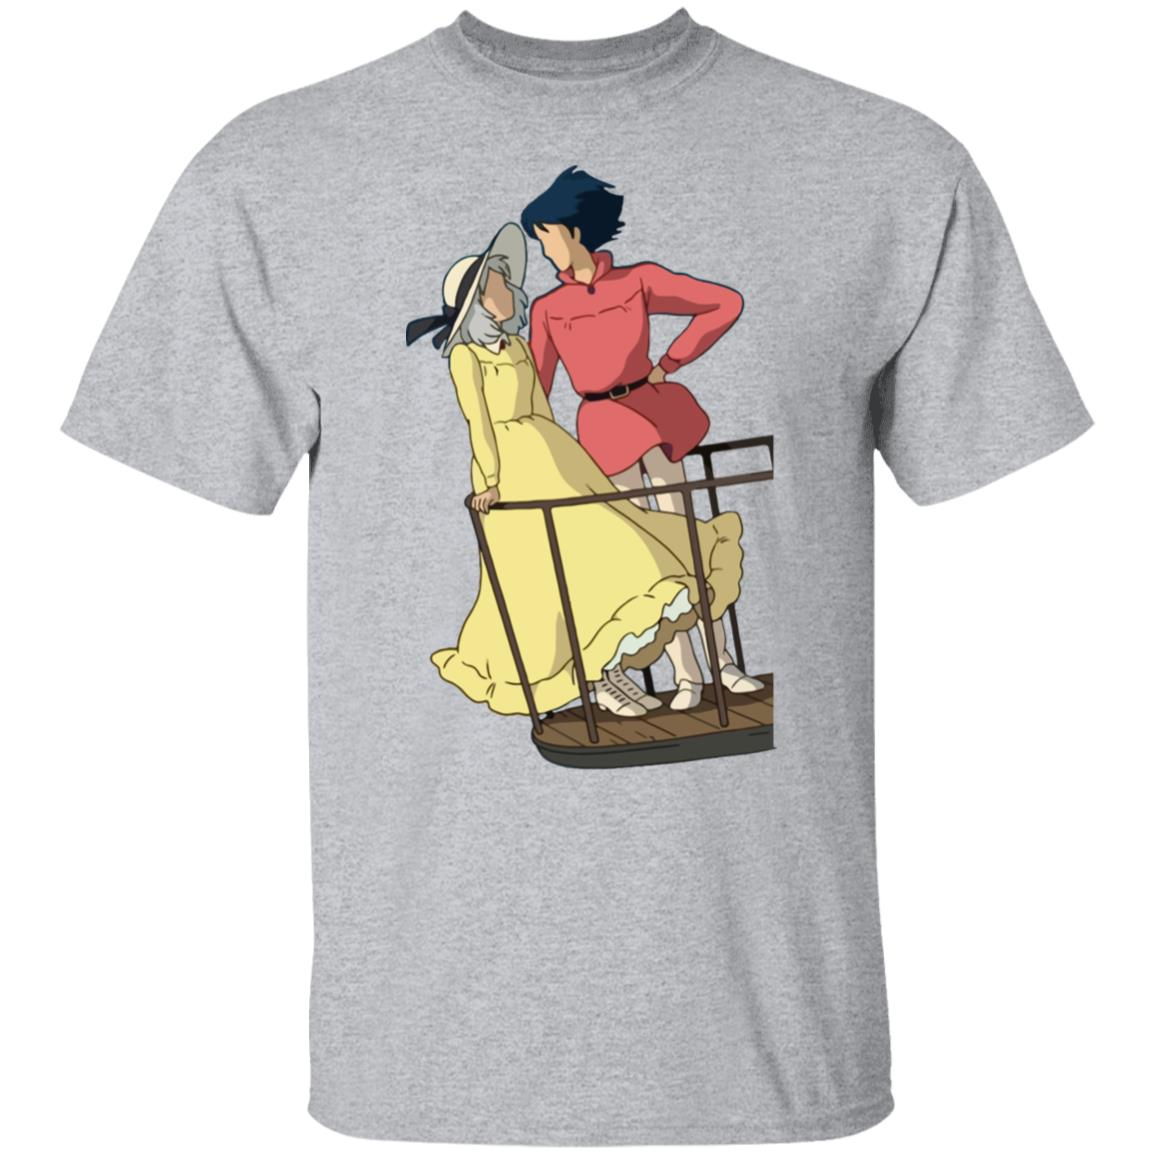 Howl's Moving Castle – Sophie and Howl Gazing at Each other T Shirt